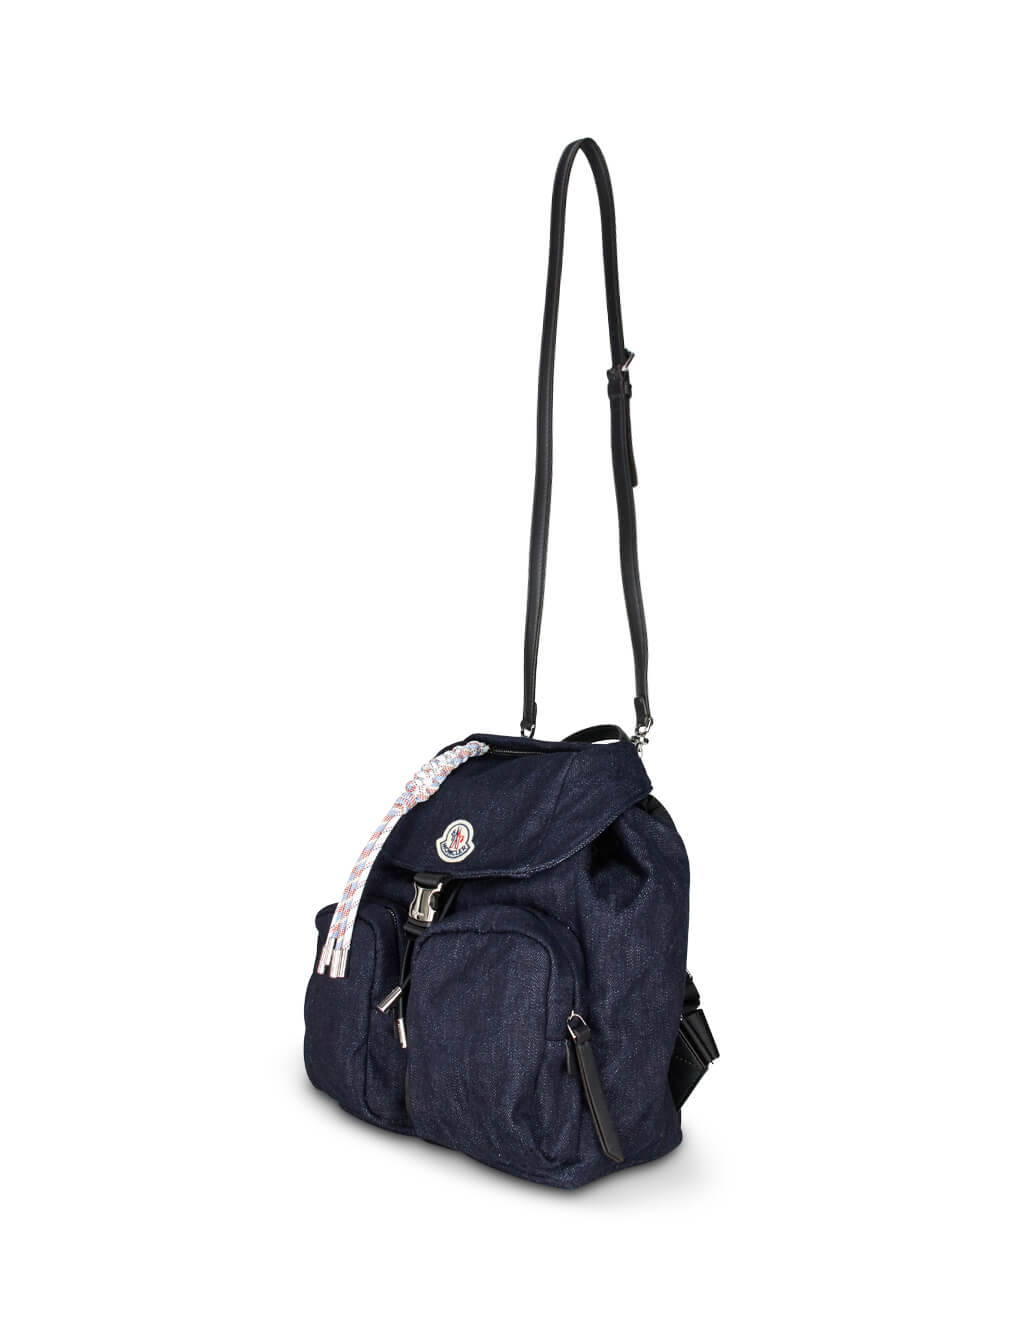 Women's Blue Moncler Dauphine Backpack 09B5A7001002SAA798